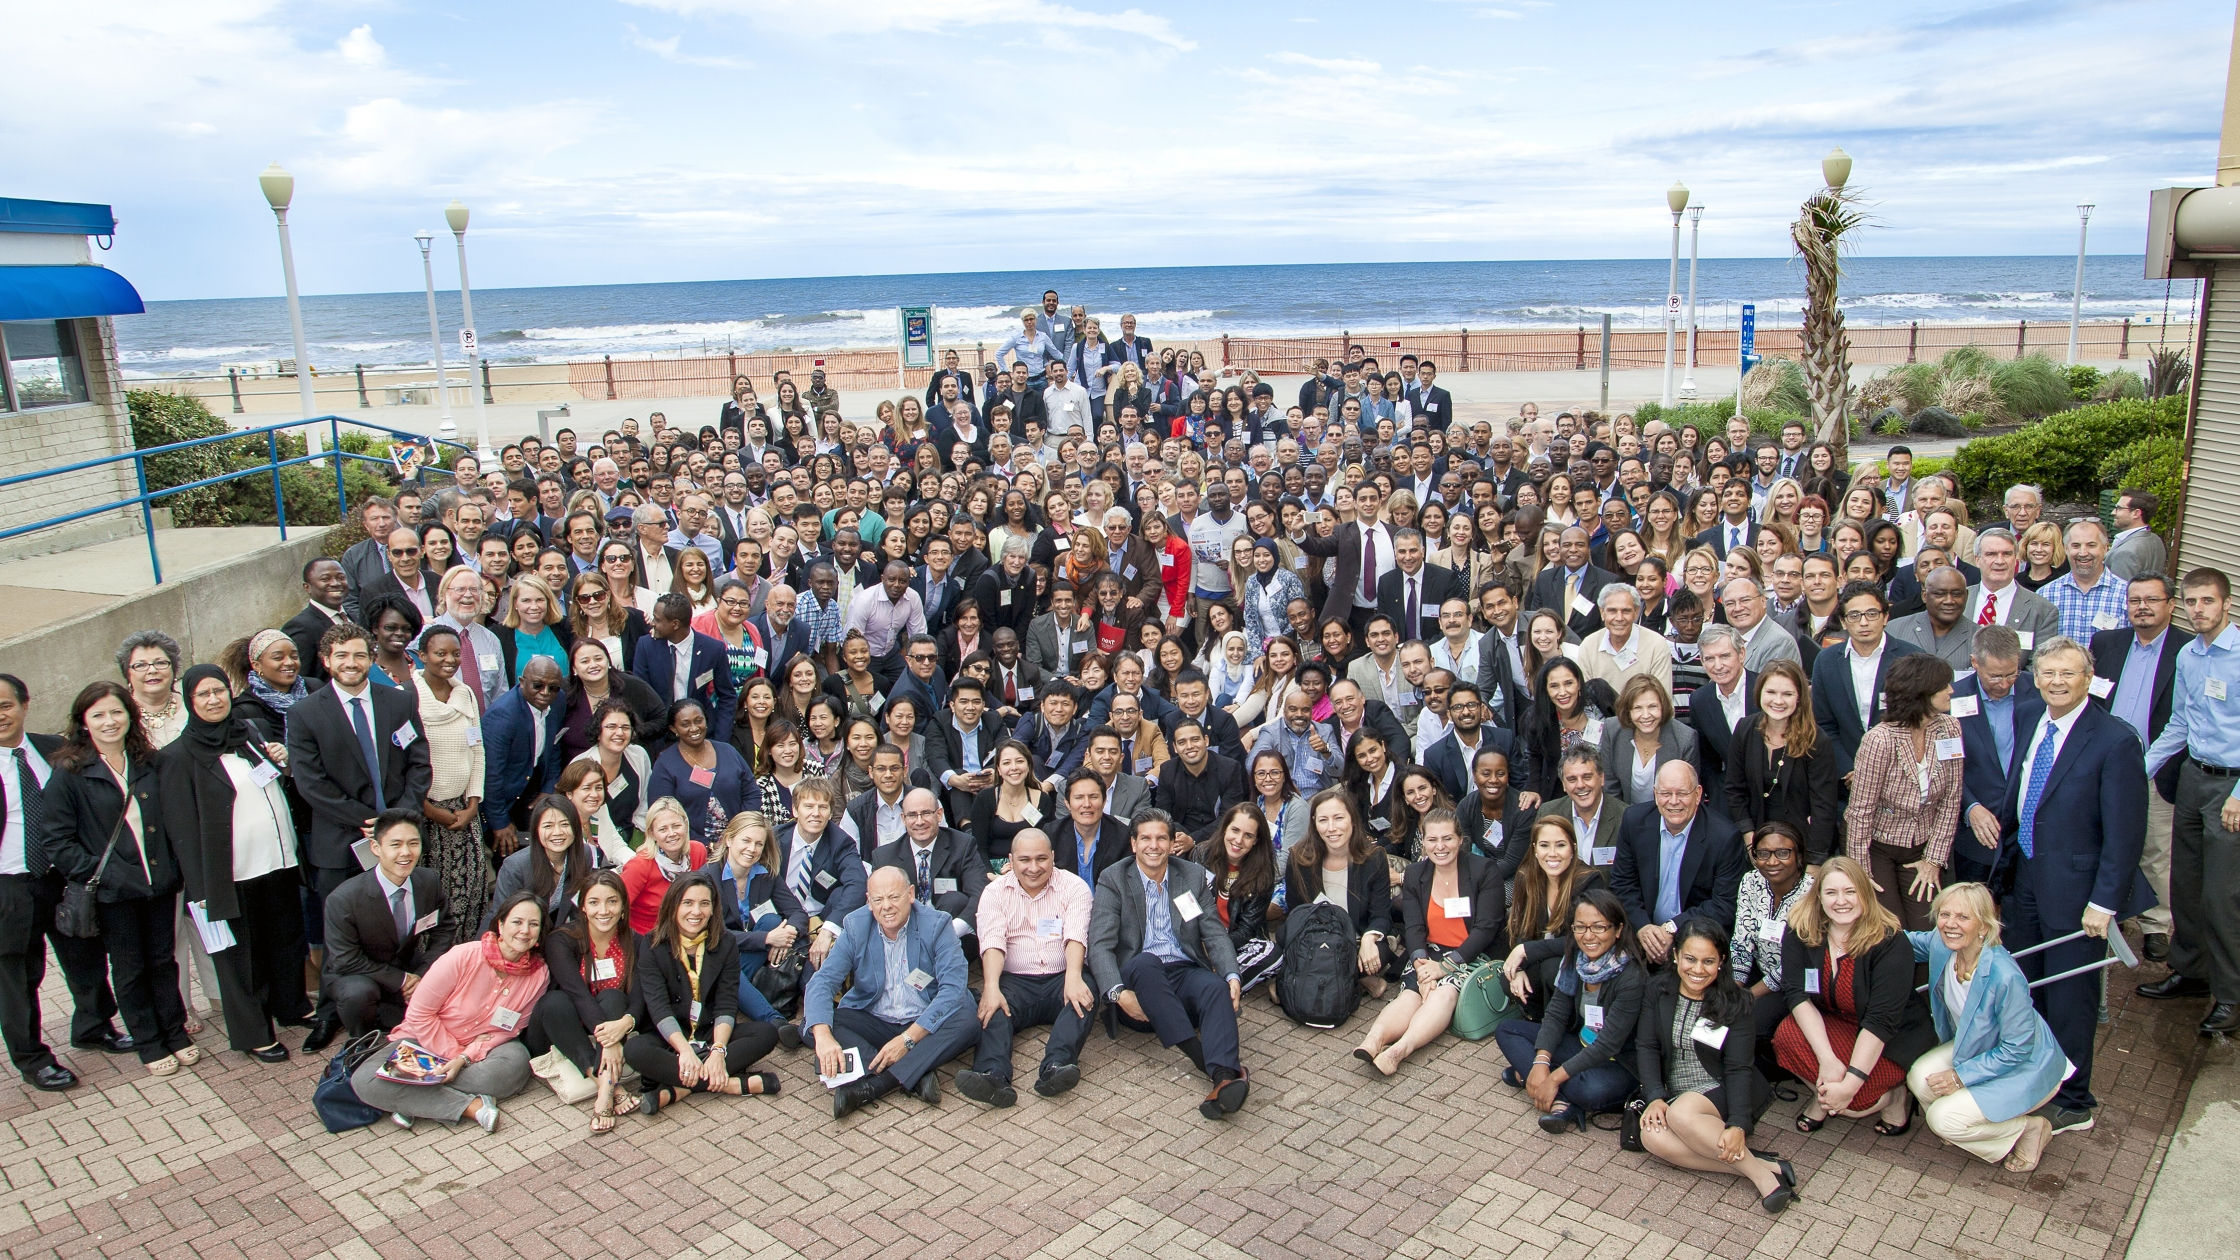 Operation Smile Next Conference and Global Summit group photo.